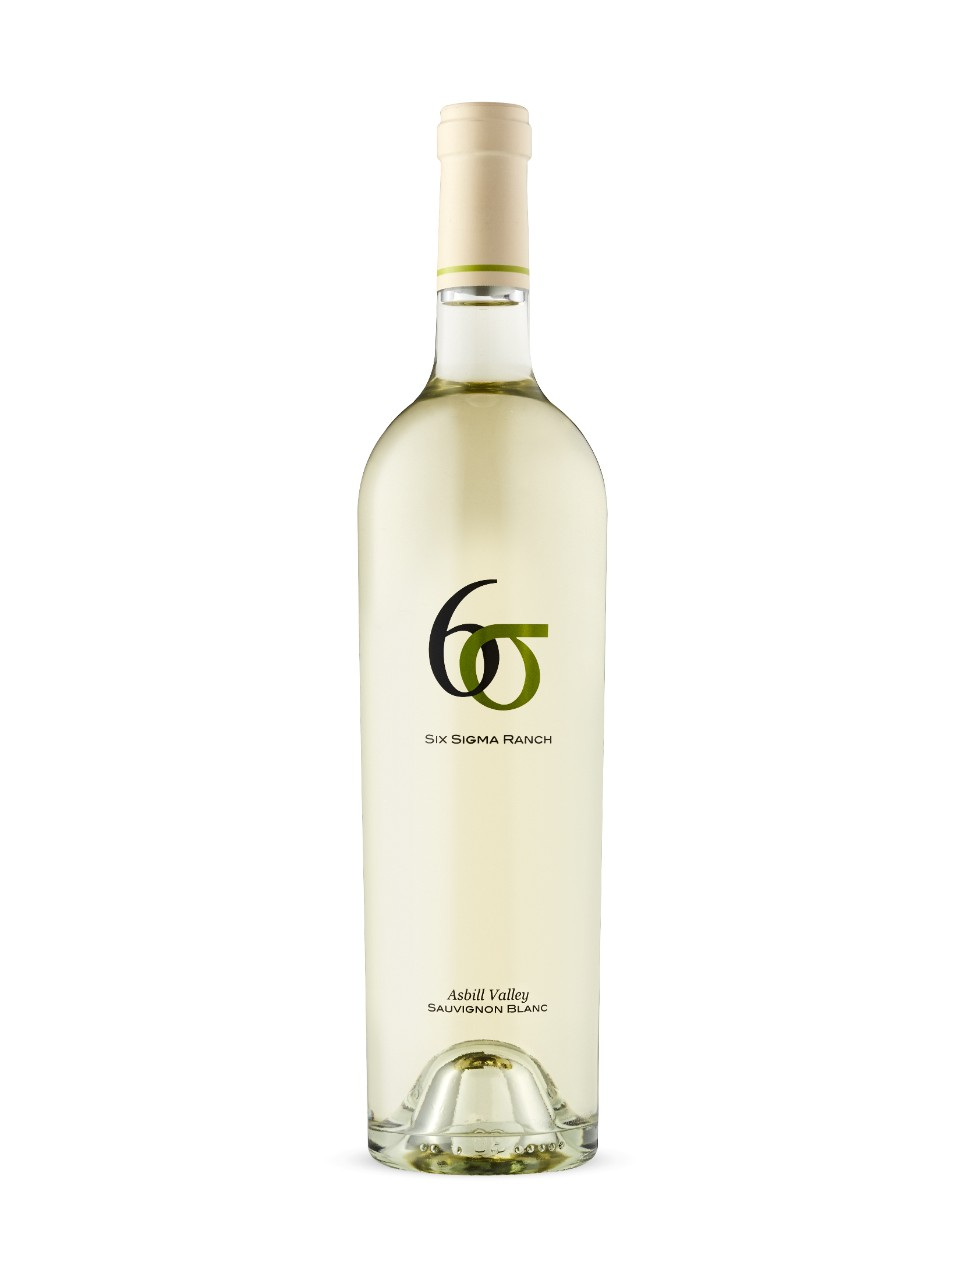 Sauvignon Blanc Asbill Valley Six Sigma Ranch 2015